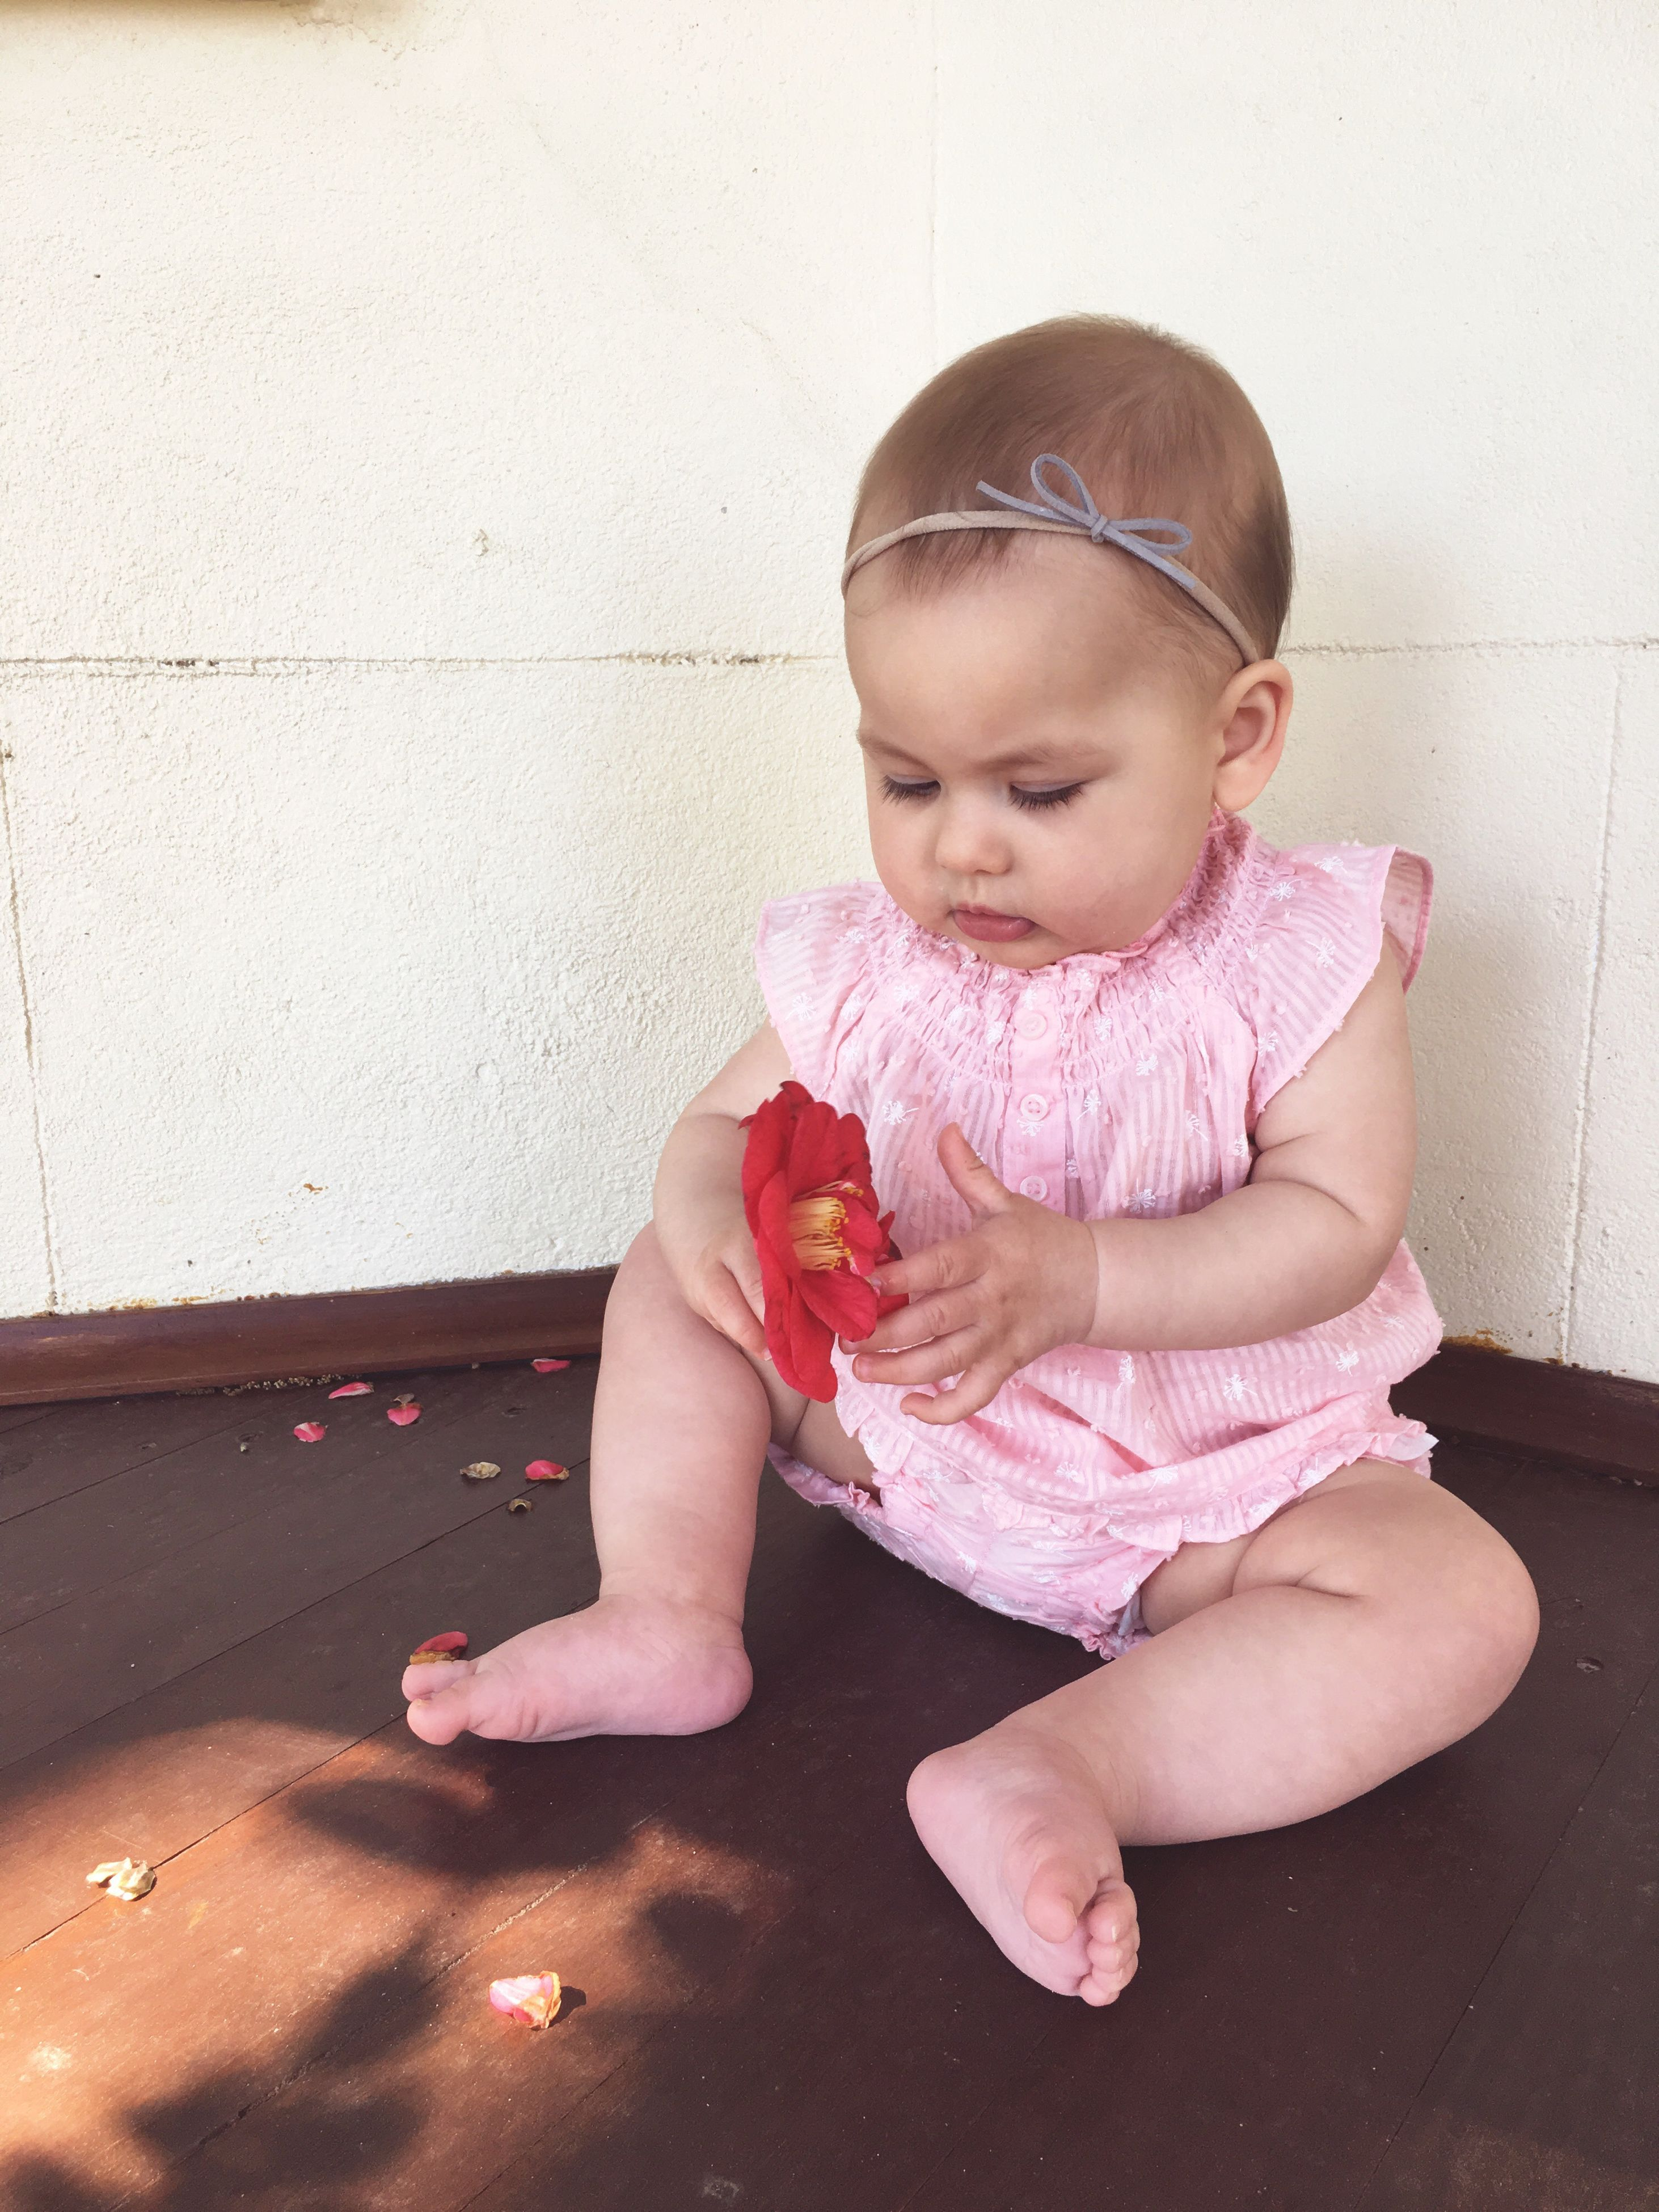 childhood, cute, innocence, full length, elementary age, toddler, babyhood, lifestyles, girls, baby girls, leisure activity, preschool age, baby, baby clothing, front view, portrait, beginnings, person, casual clothing, looking at camera, holding, new life, in front of, day, unknown gender